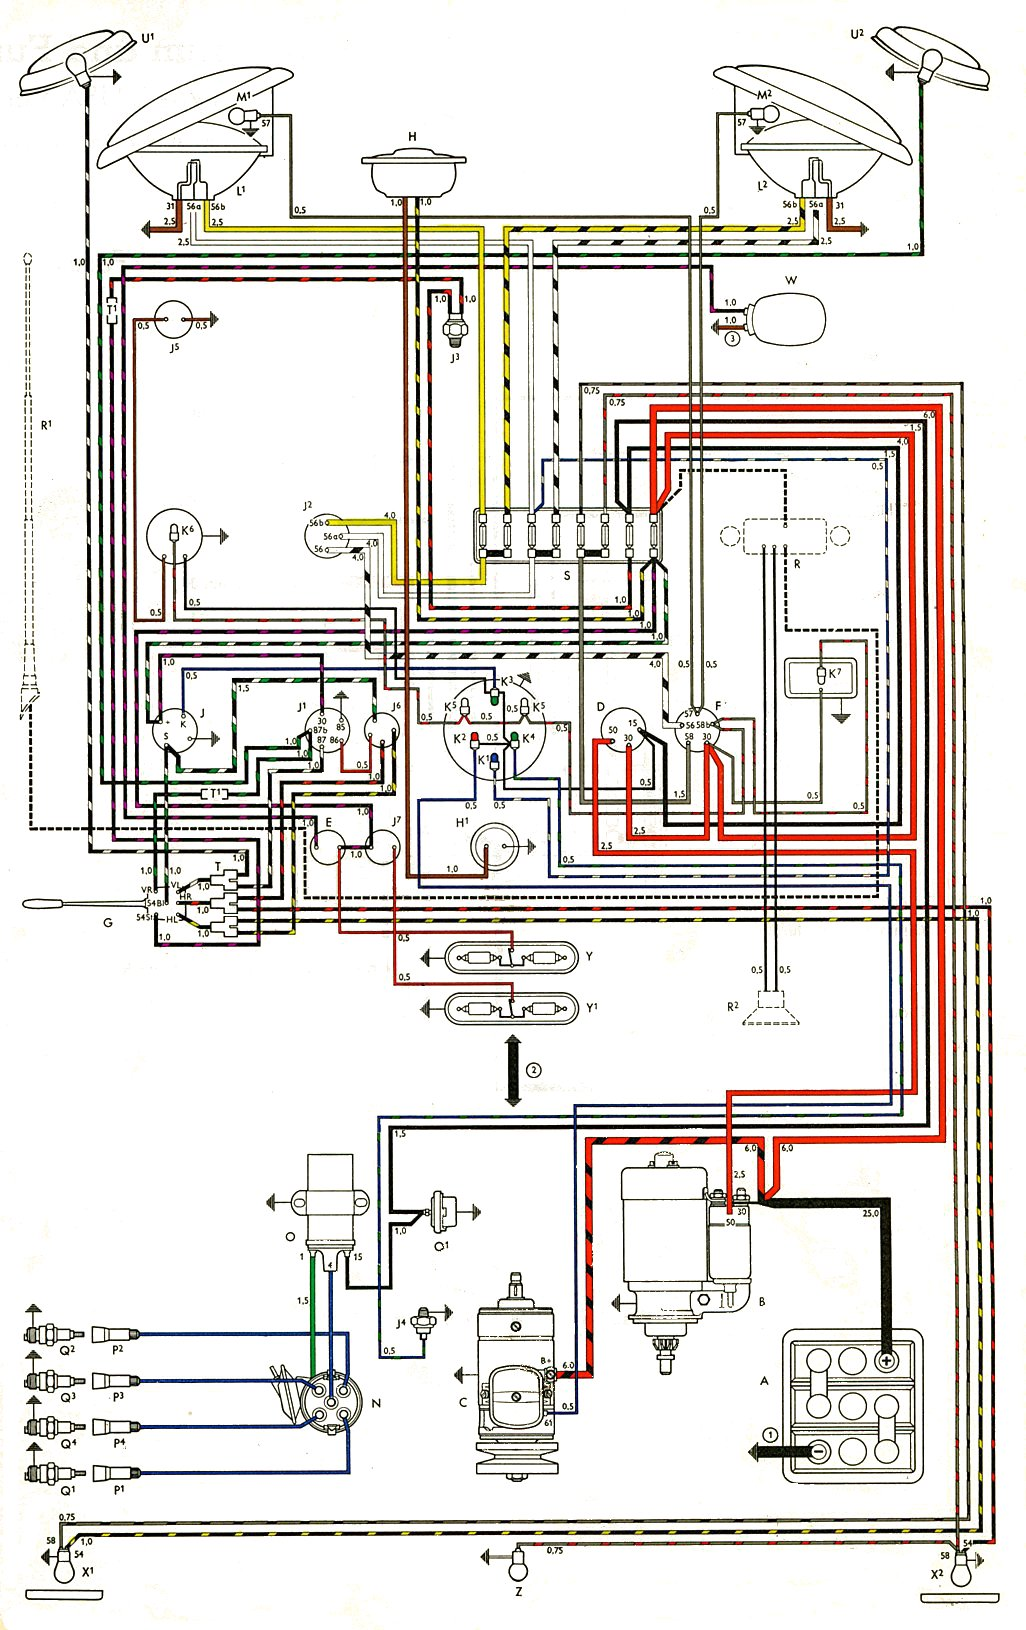 1969 Vw Bug Wiring Diagram - Wiring Diagram